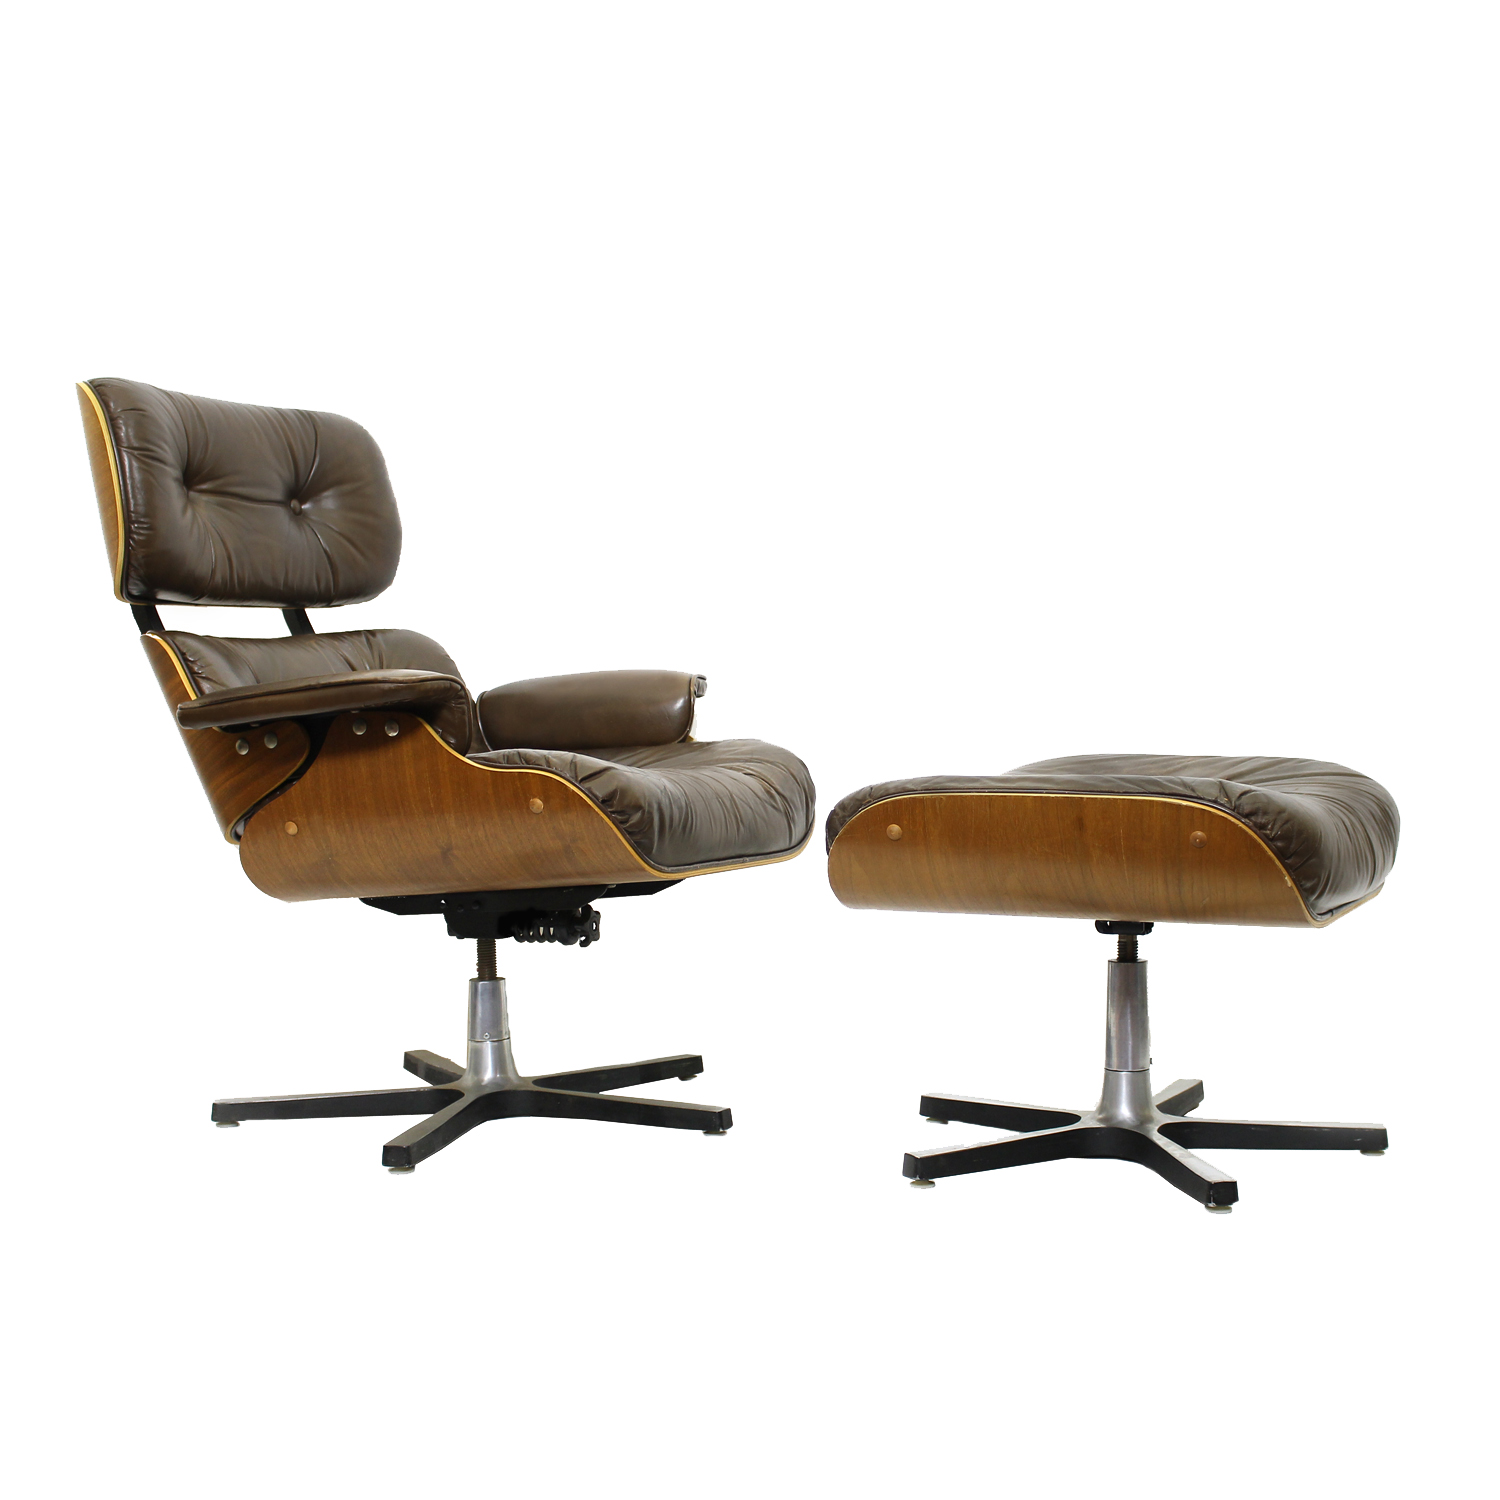 Vintage Canadian-Made Eames Style Lounge Chair and Ottoman, 1971